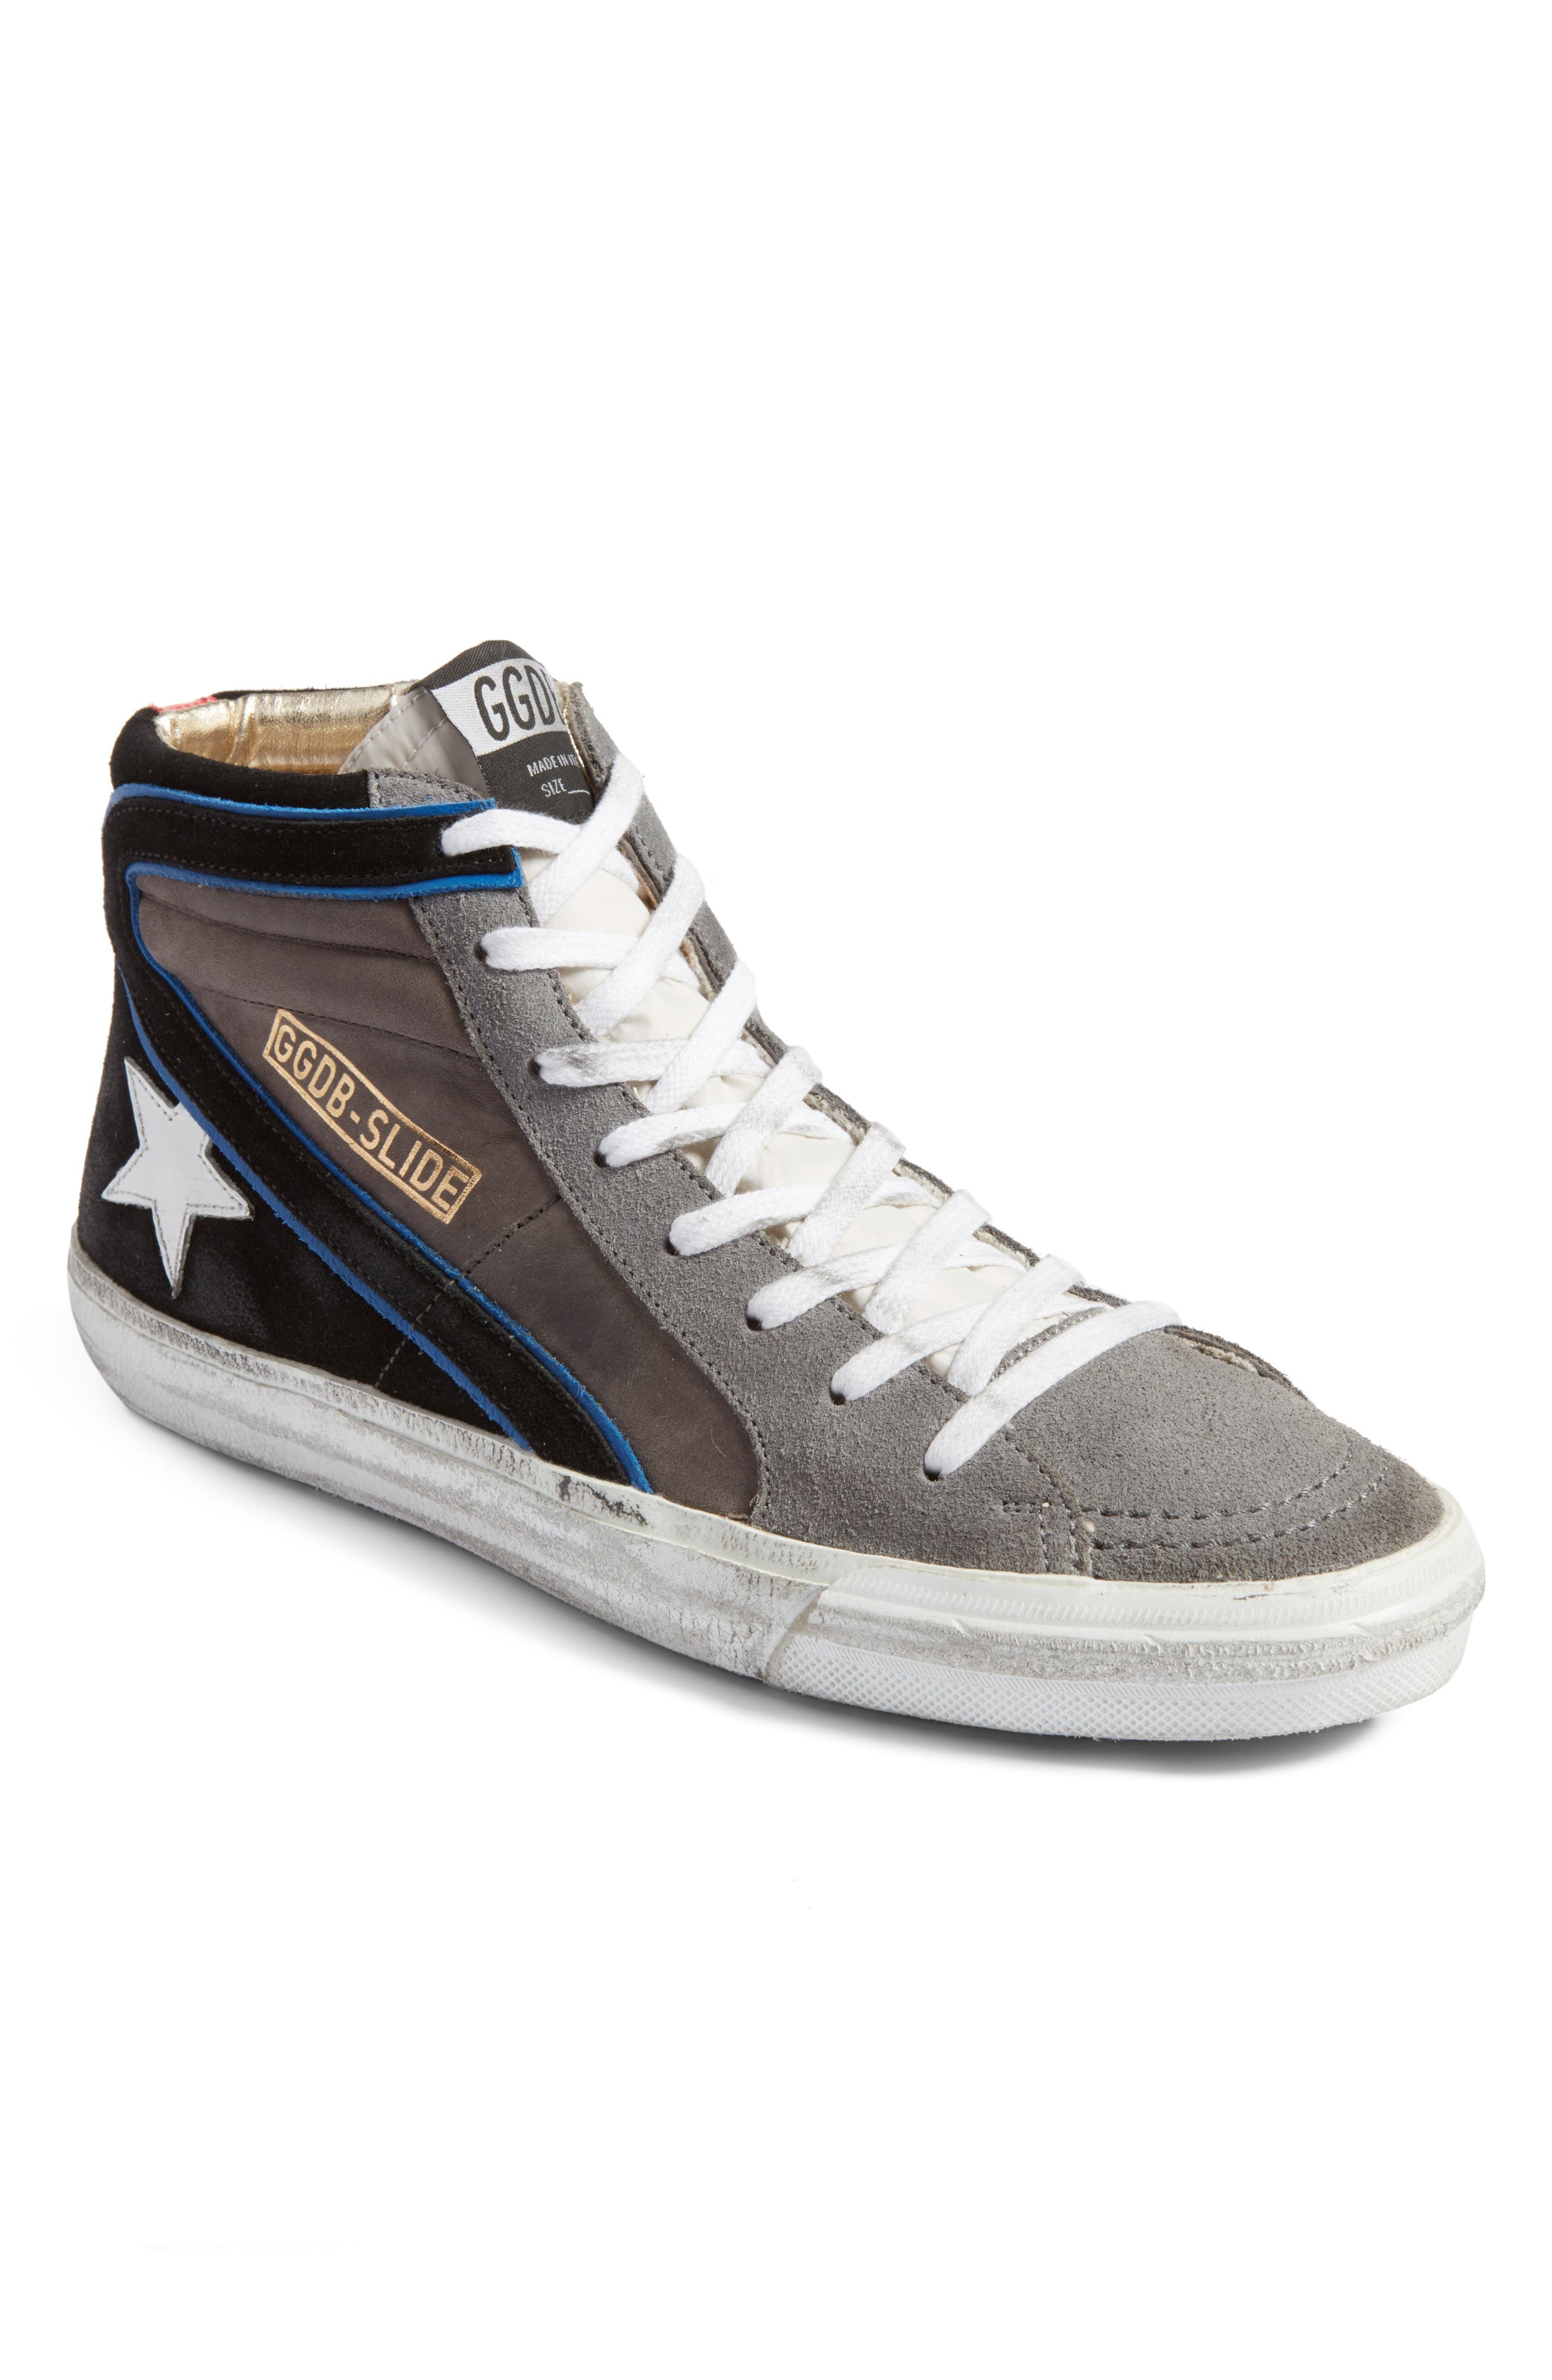 Slide High Top Sneaker,                             Main thumbnail 1, color,                             Grey/ Blue Suede